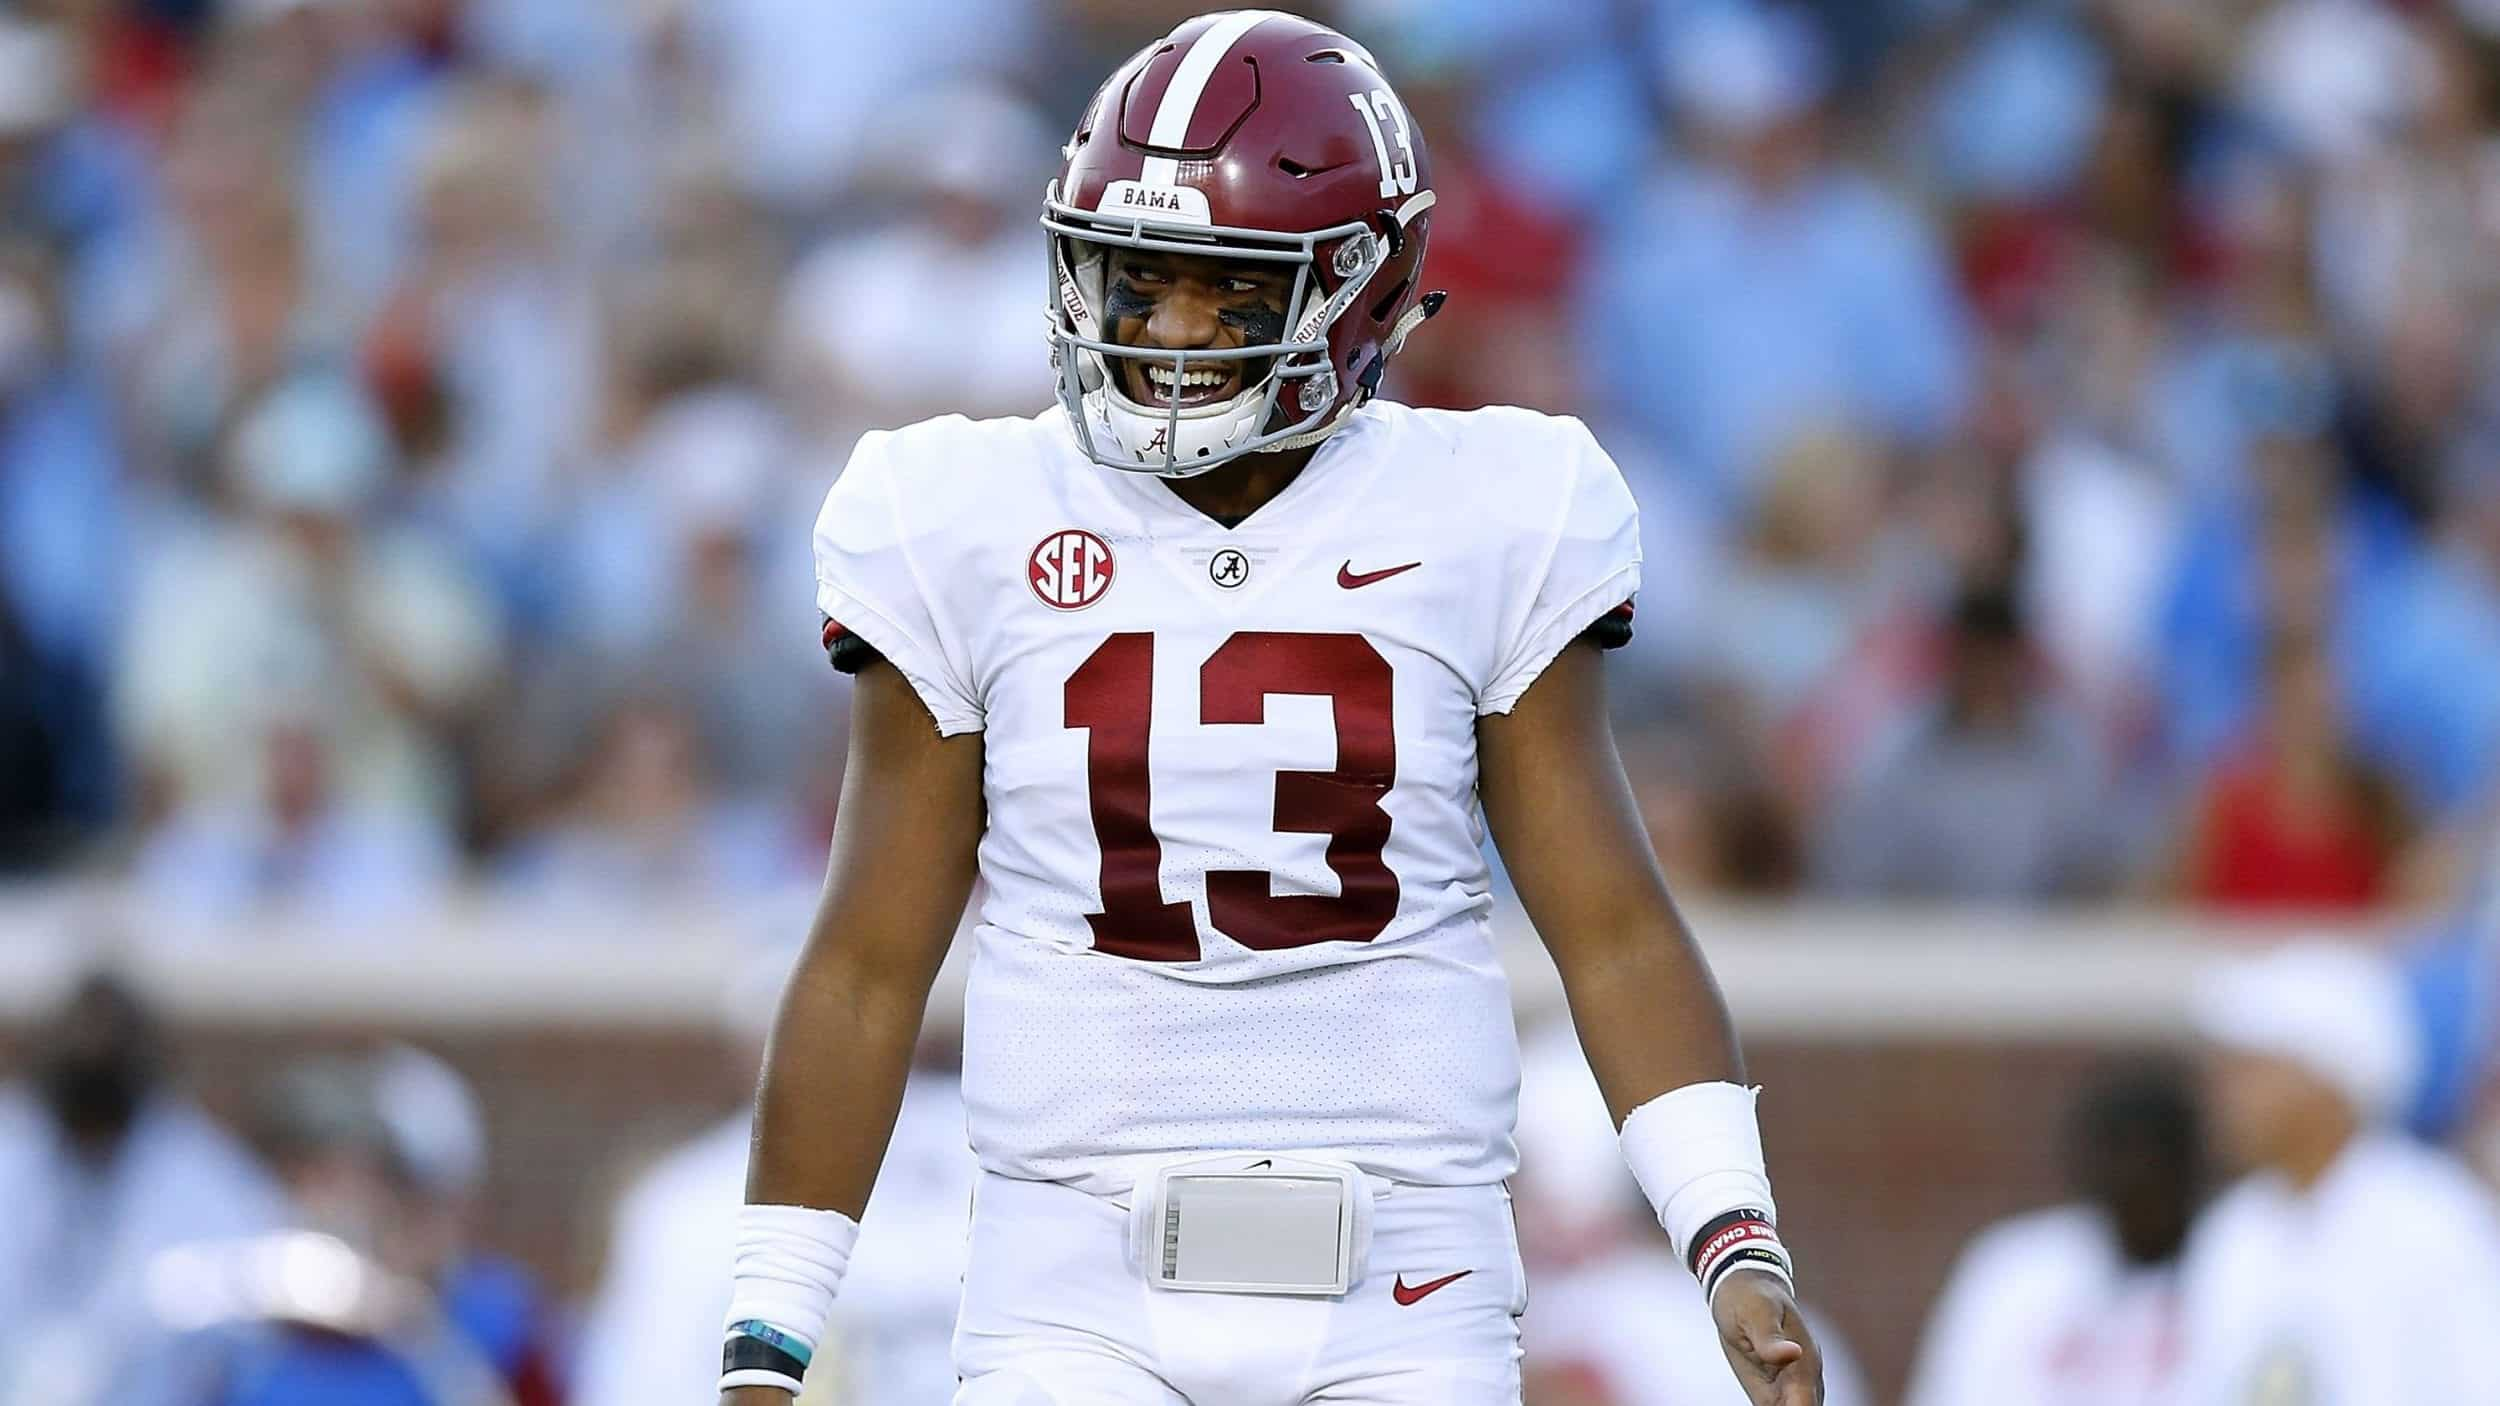 Best Draft Position Fantasy Football 2020 2020 NFL Draft: Tagovailoa and Herbert lead the list of top 5